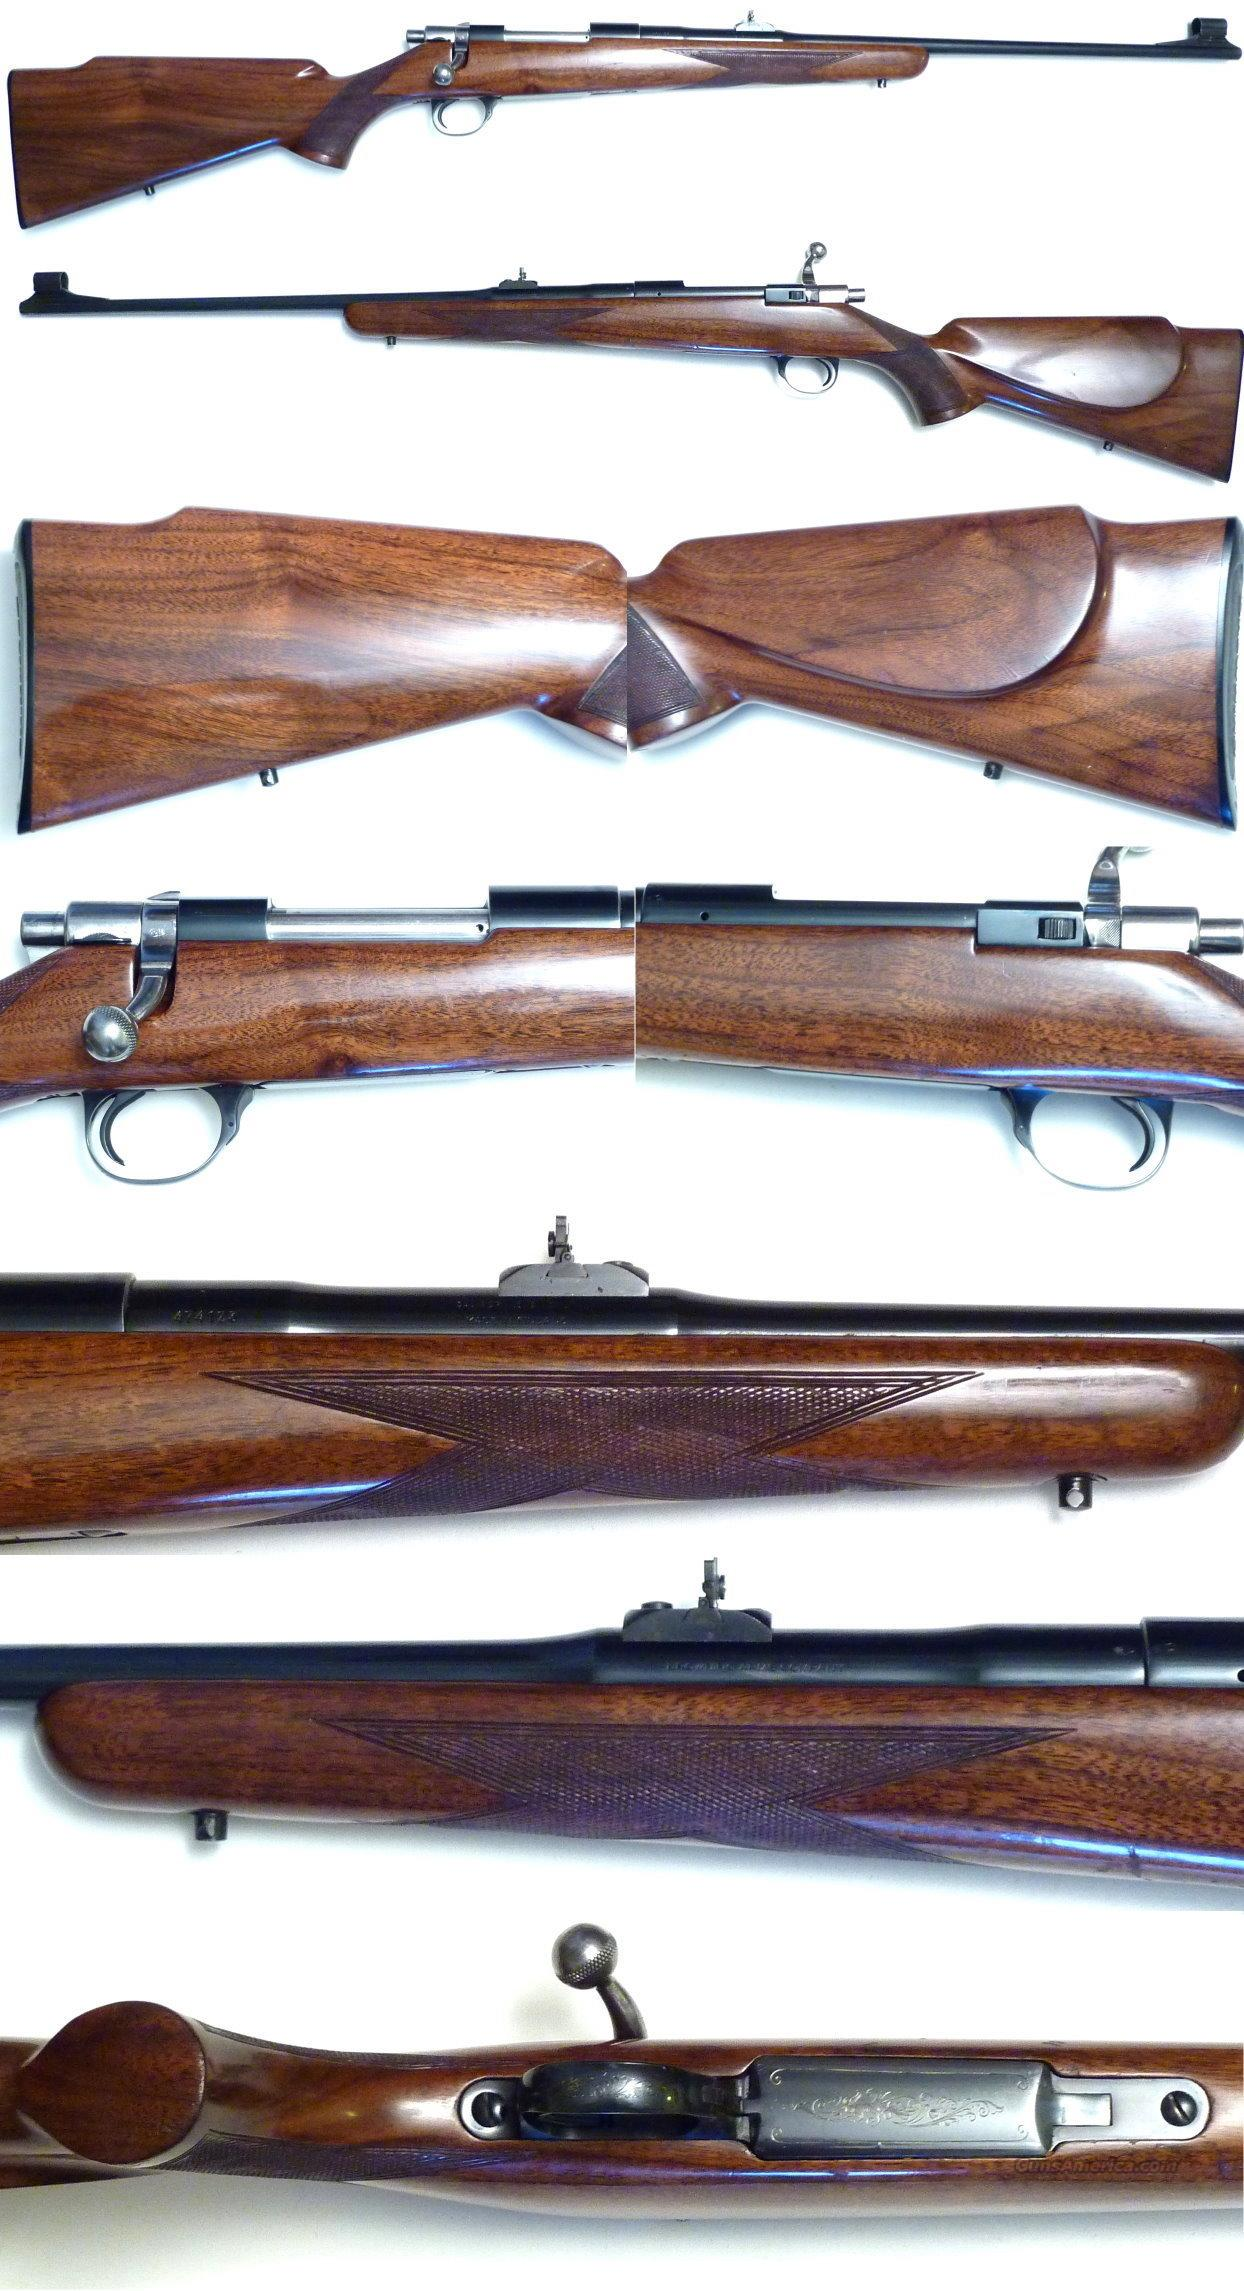 '64 Browning Safari Grade 243 bolt action exc cond  Guns > Rifles > Browning Rifles > Bolt Action > Hunting > Blue